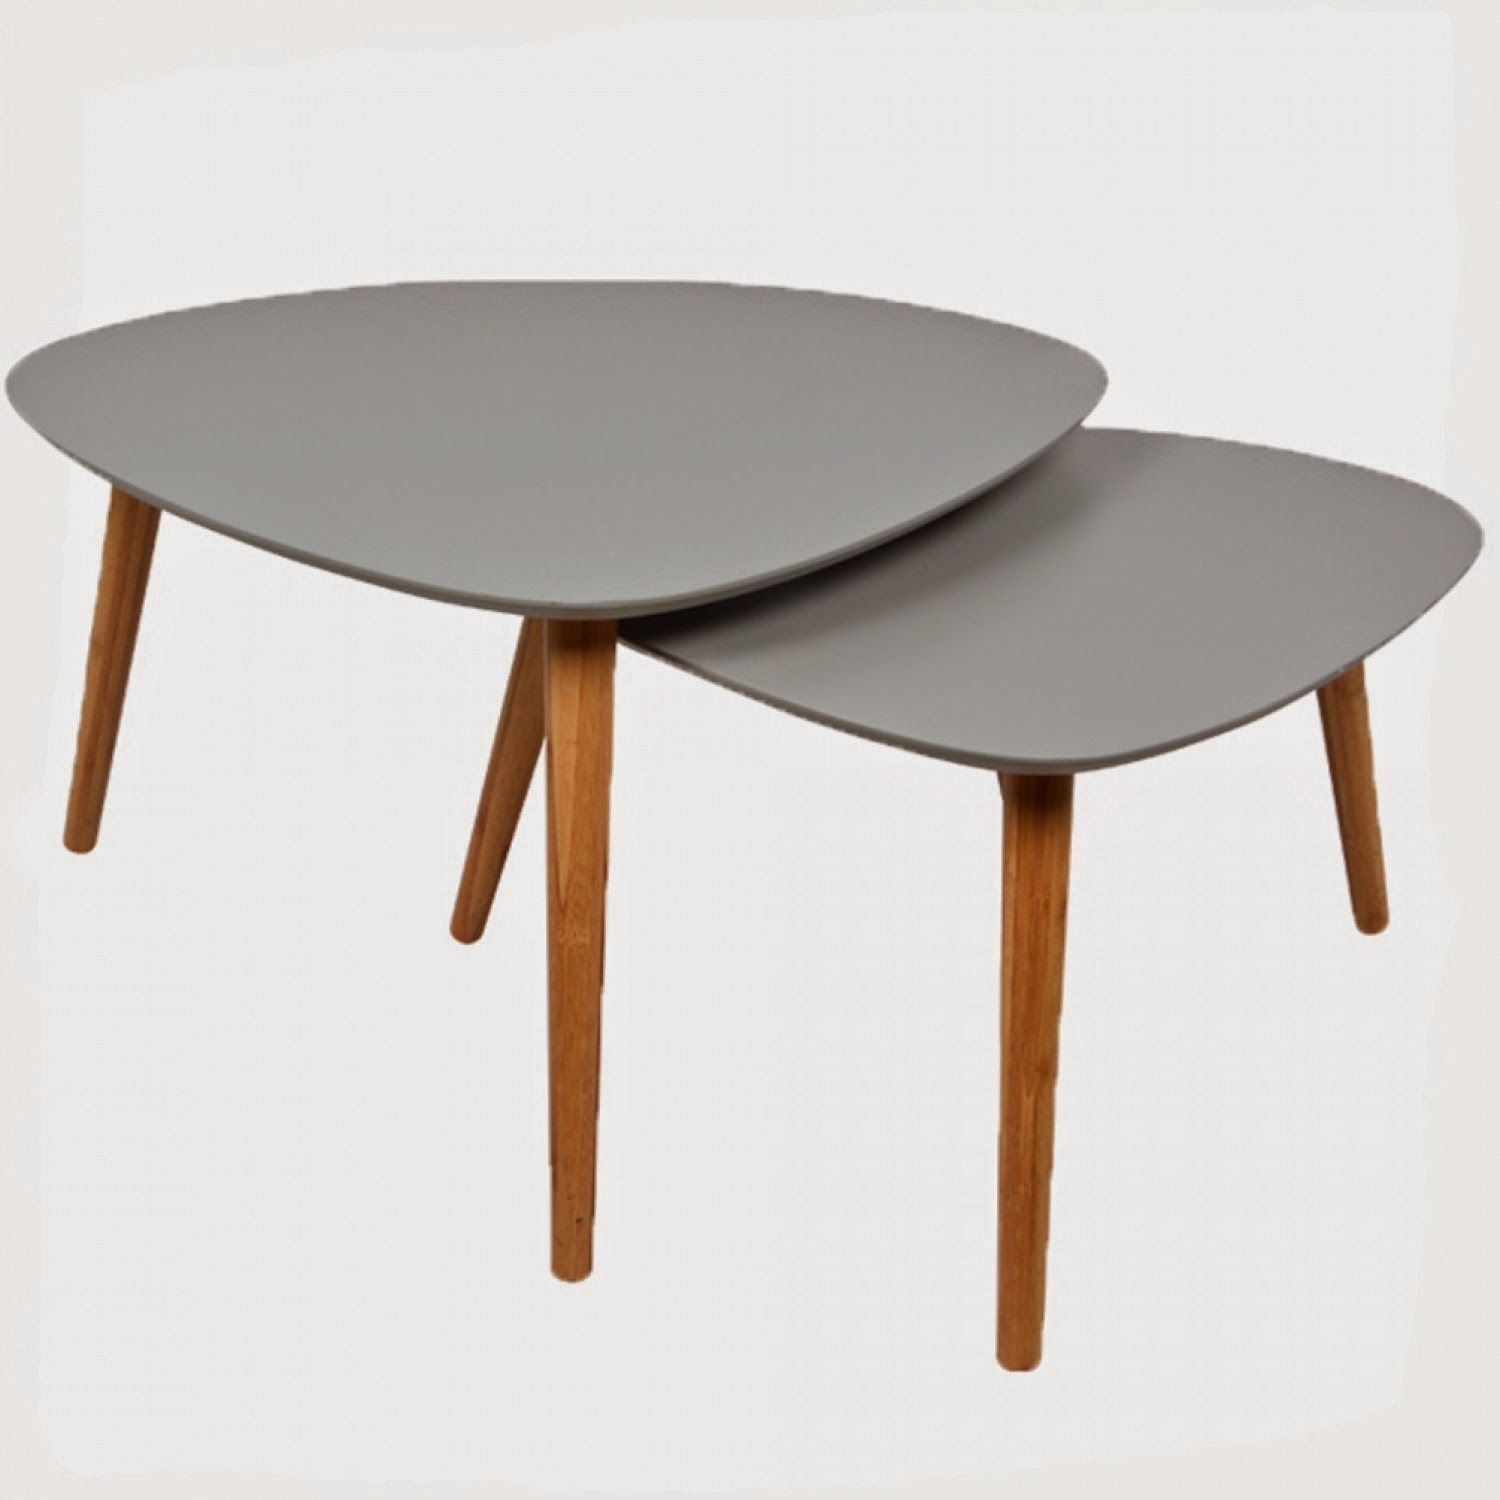 Les tables basses gigognes caract rielle bloglovin - Tables basses gigognes design ...